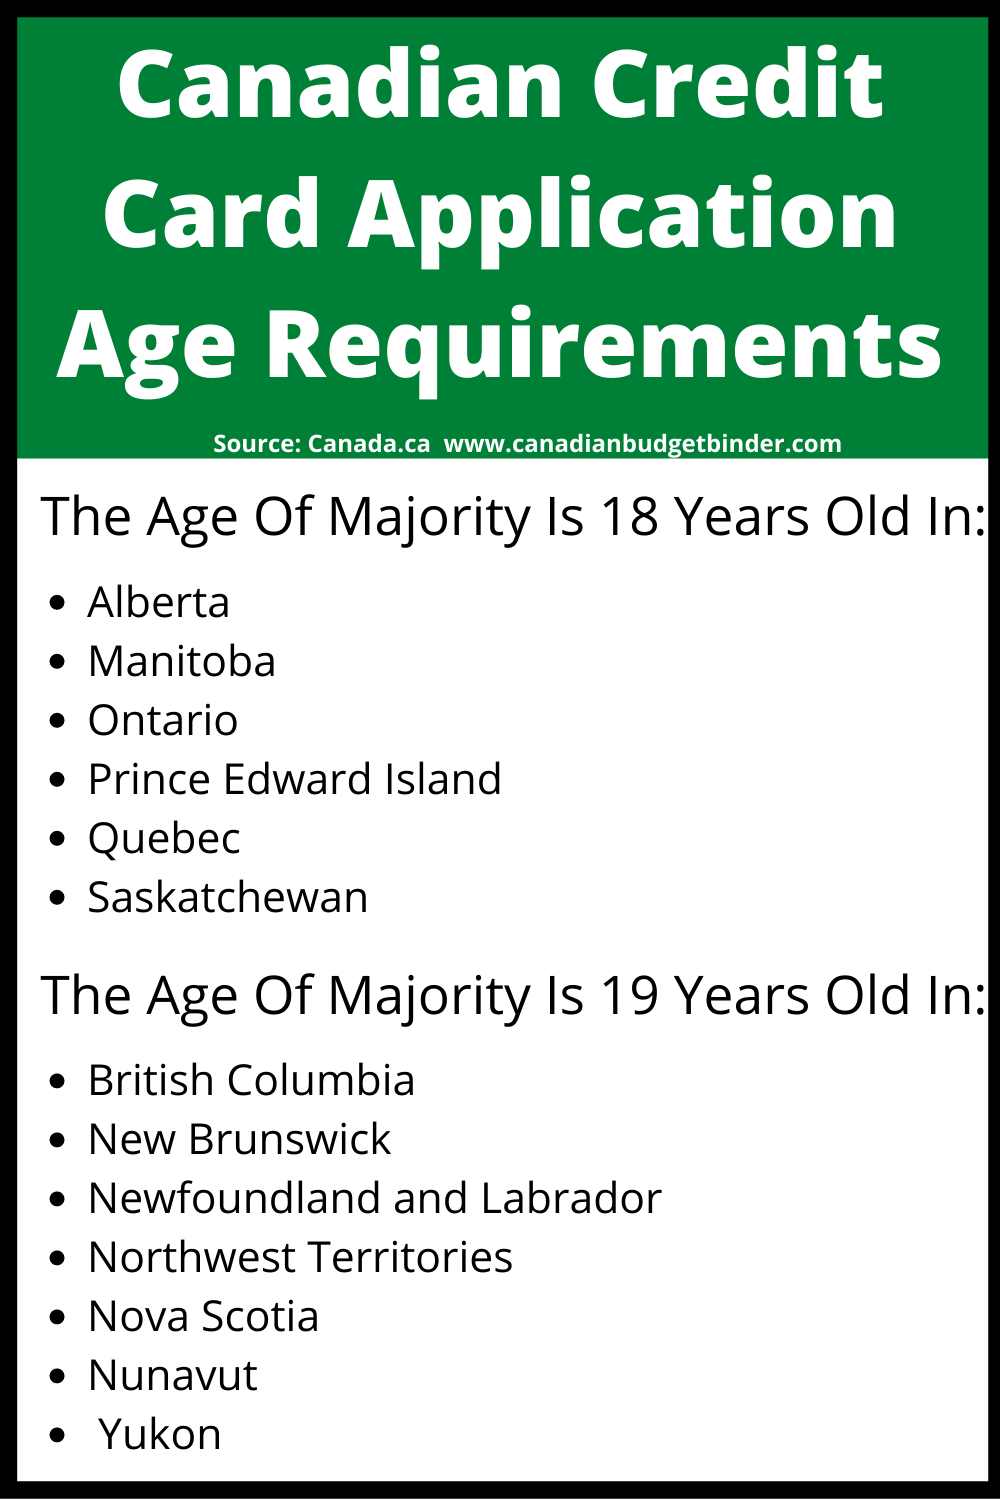 Credit card age requirements